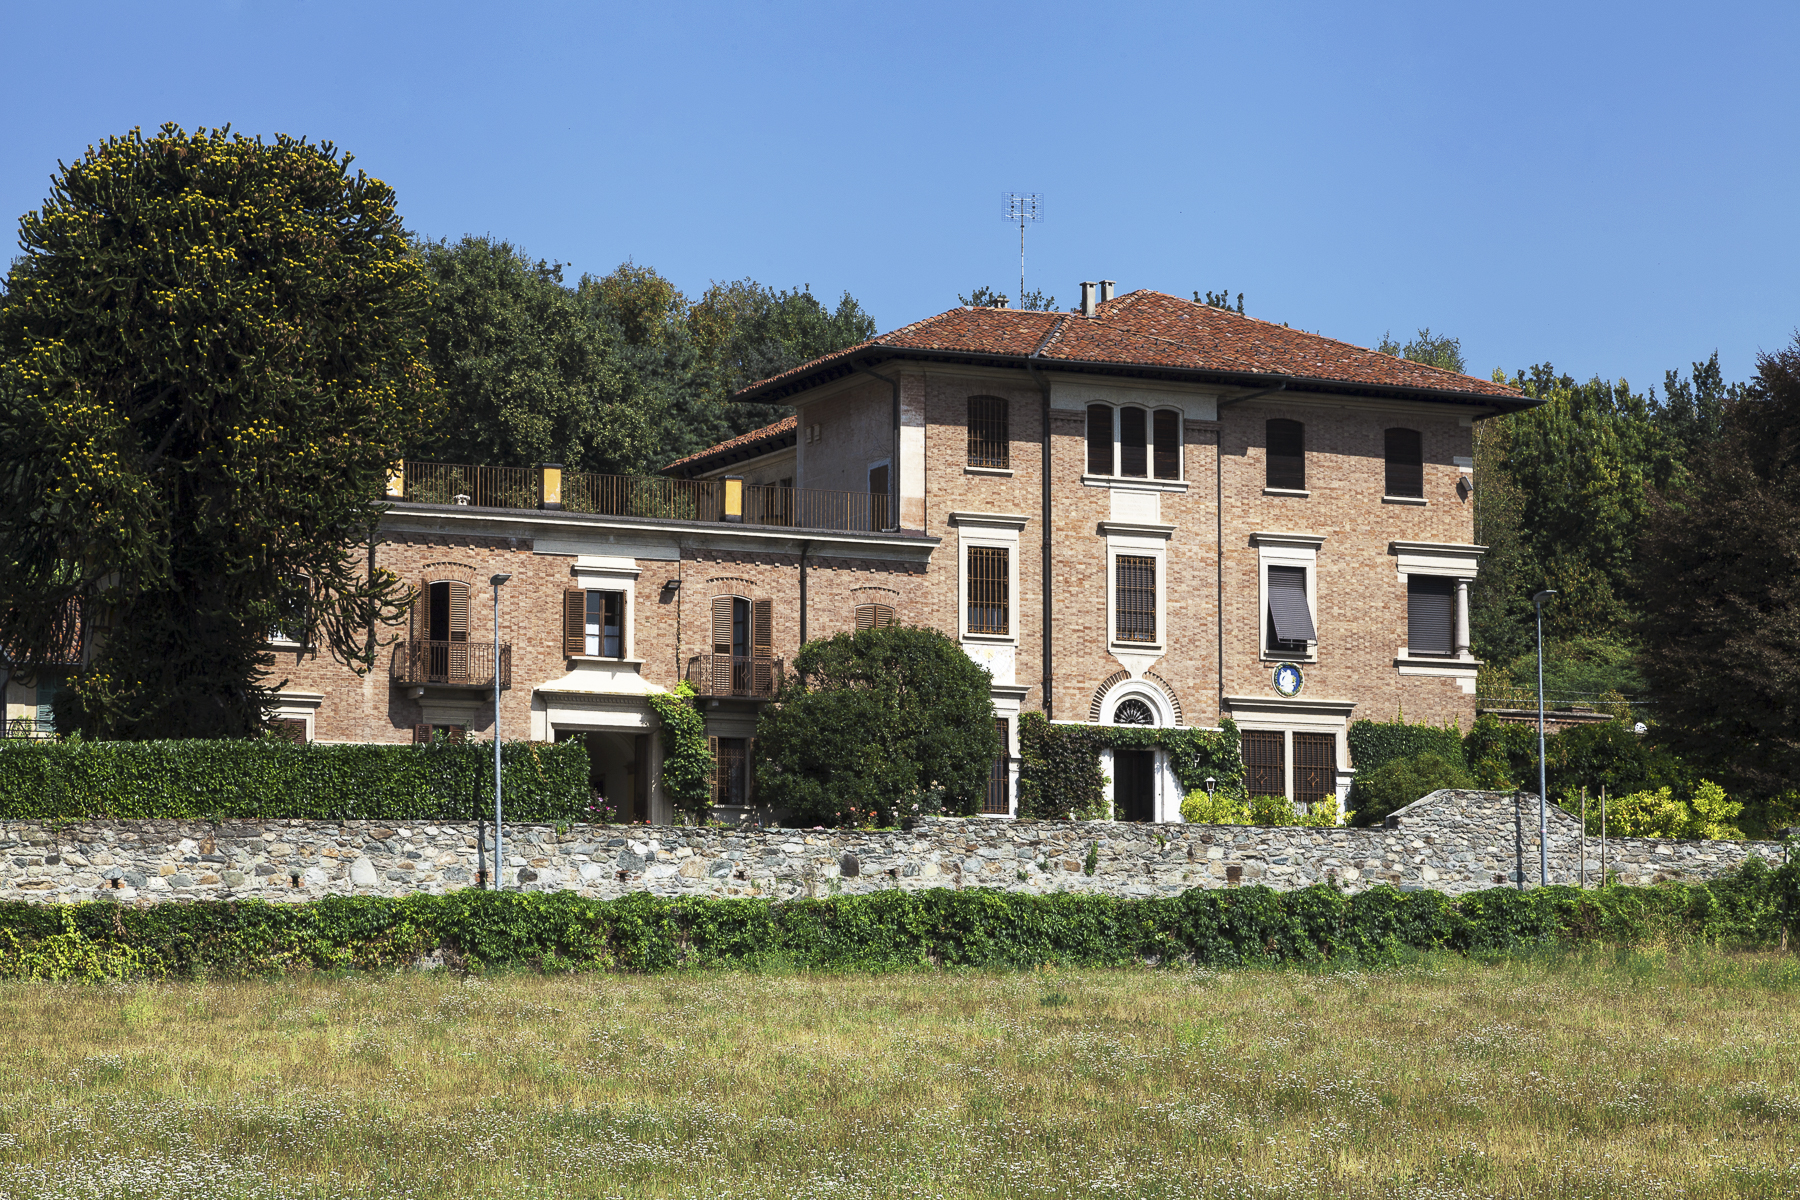 Maison unifamiliale pour l Vente à Unique Villa with swimming pool Piazza Rampone Roppolo, Belluno 13883 Italie